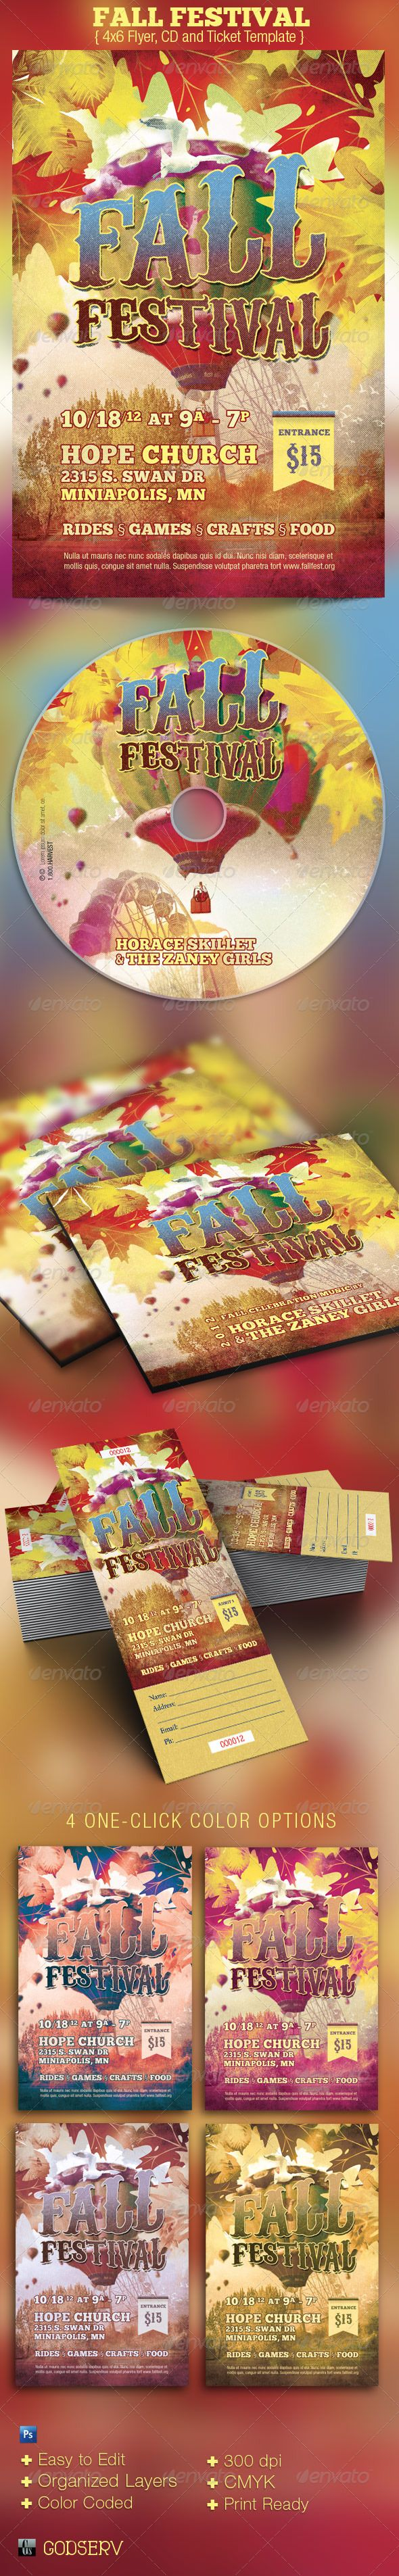 Fall Festival Church Flyer, CD and Ticket Template - $7.00: Templates Thanksgiving, Fall Festivals, Church Flyers, Ticket Template, Festival Church, Flyer Templates